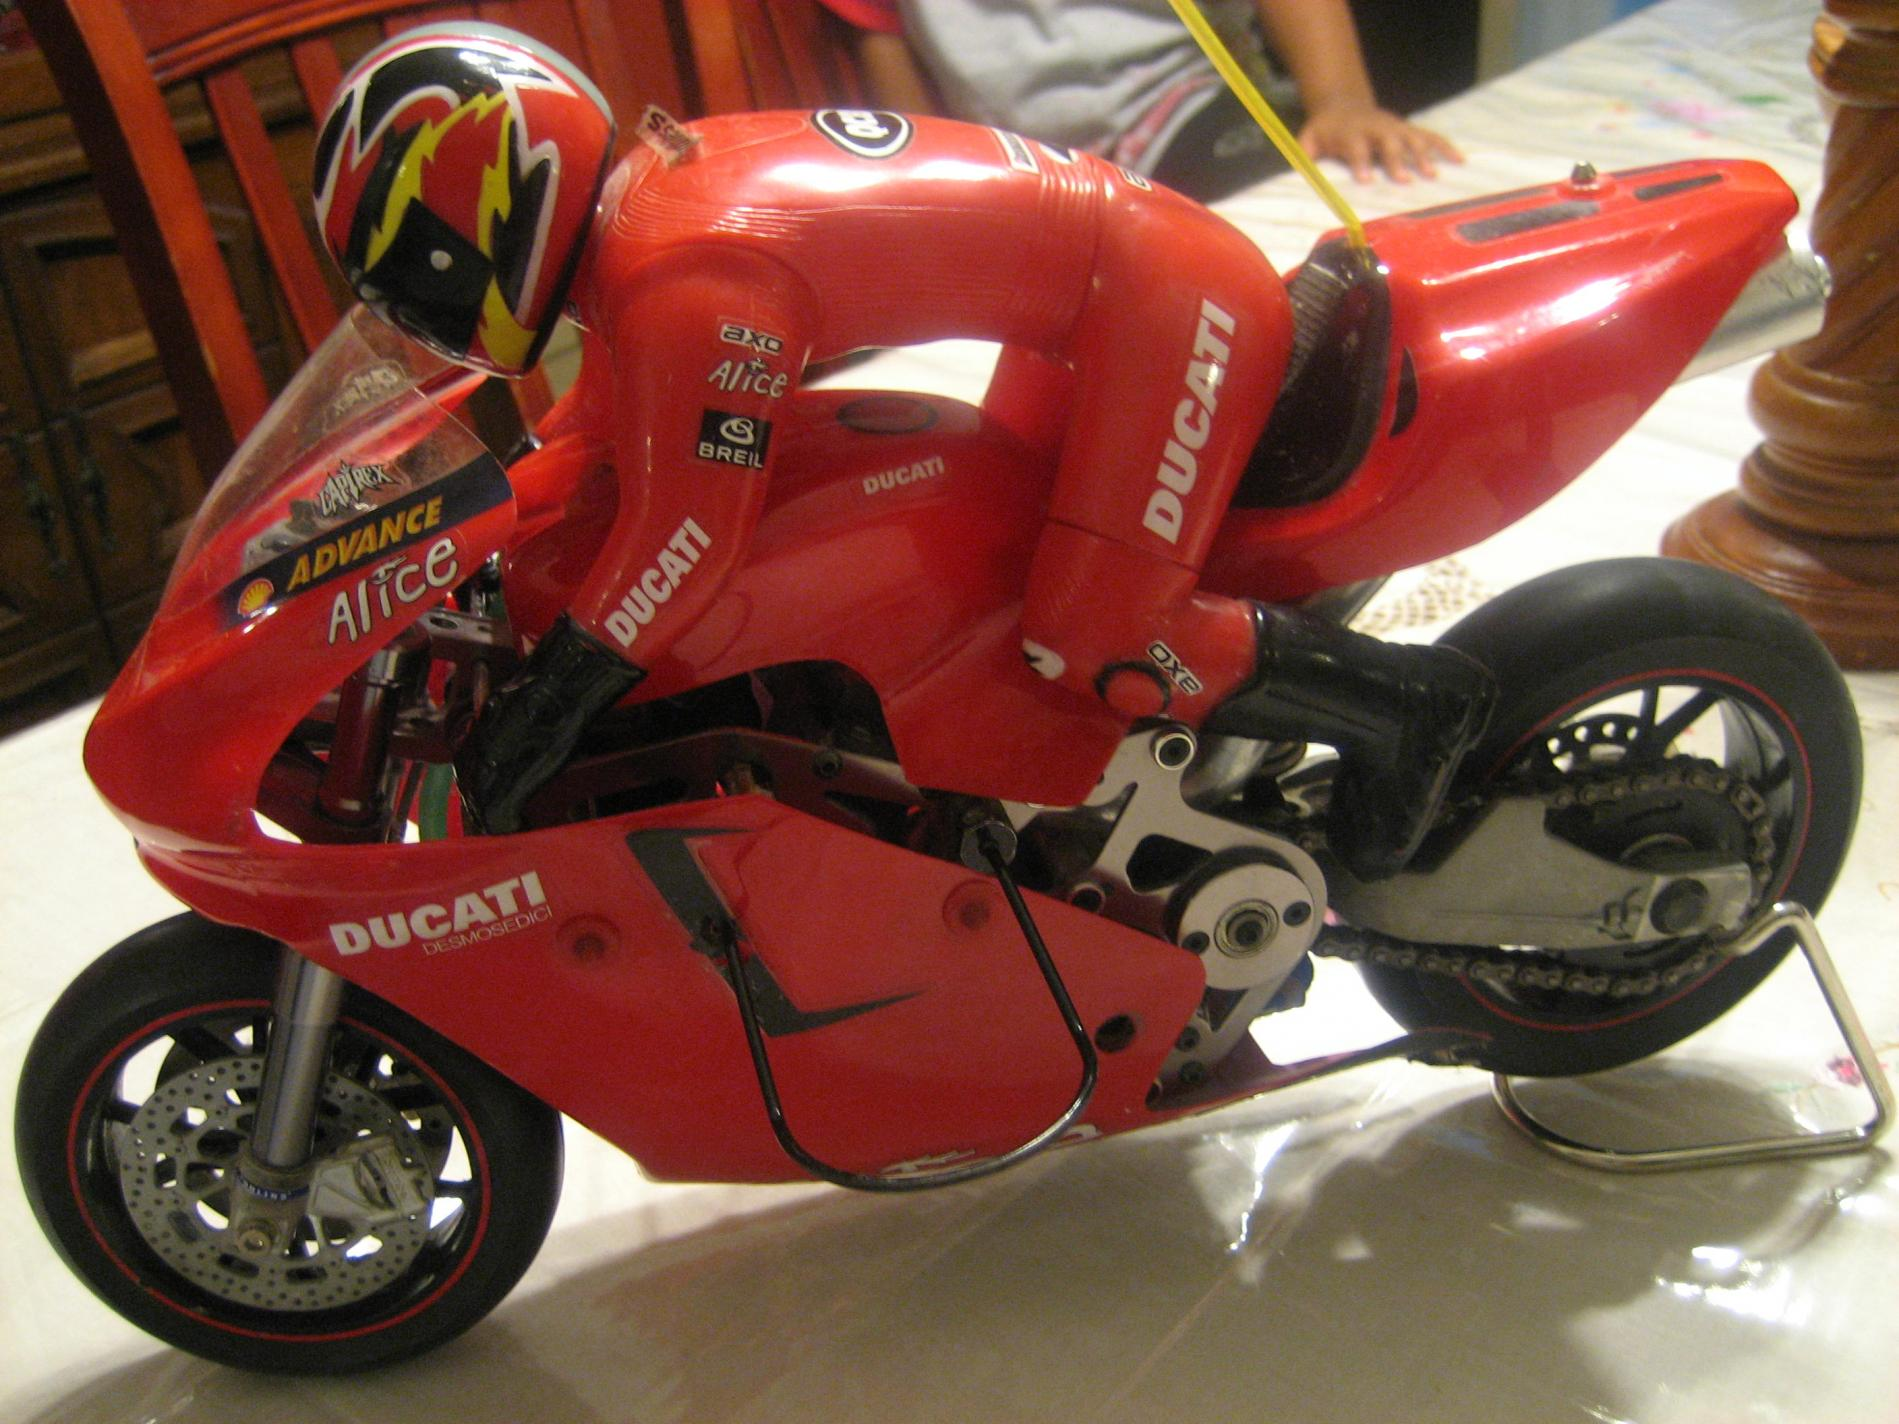 red thunder tiger ducati 999r nitro motorcycle - r/c tech forums